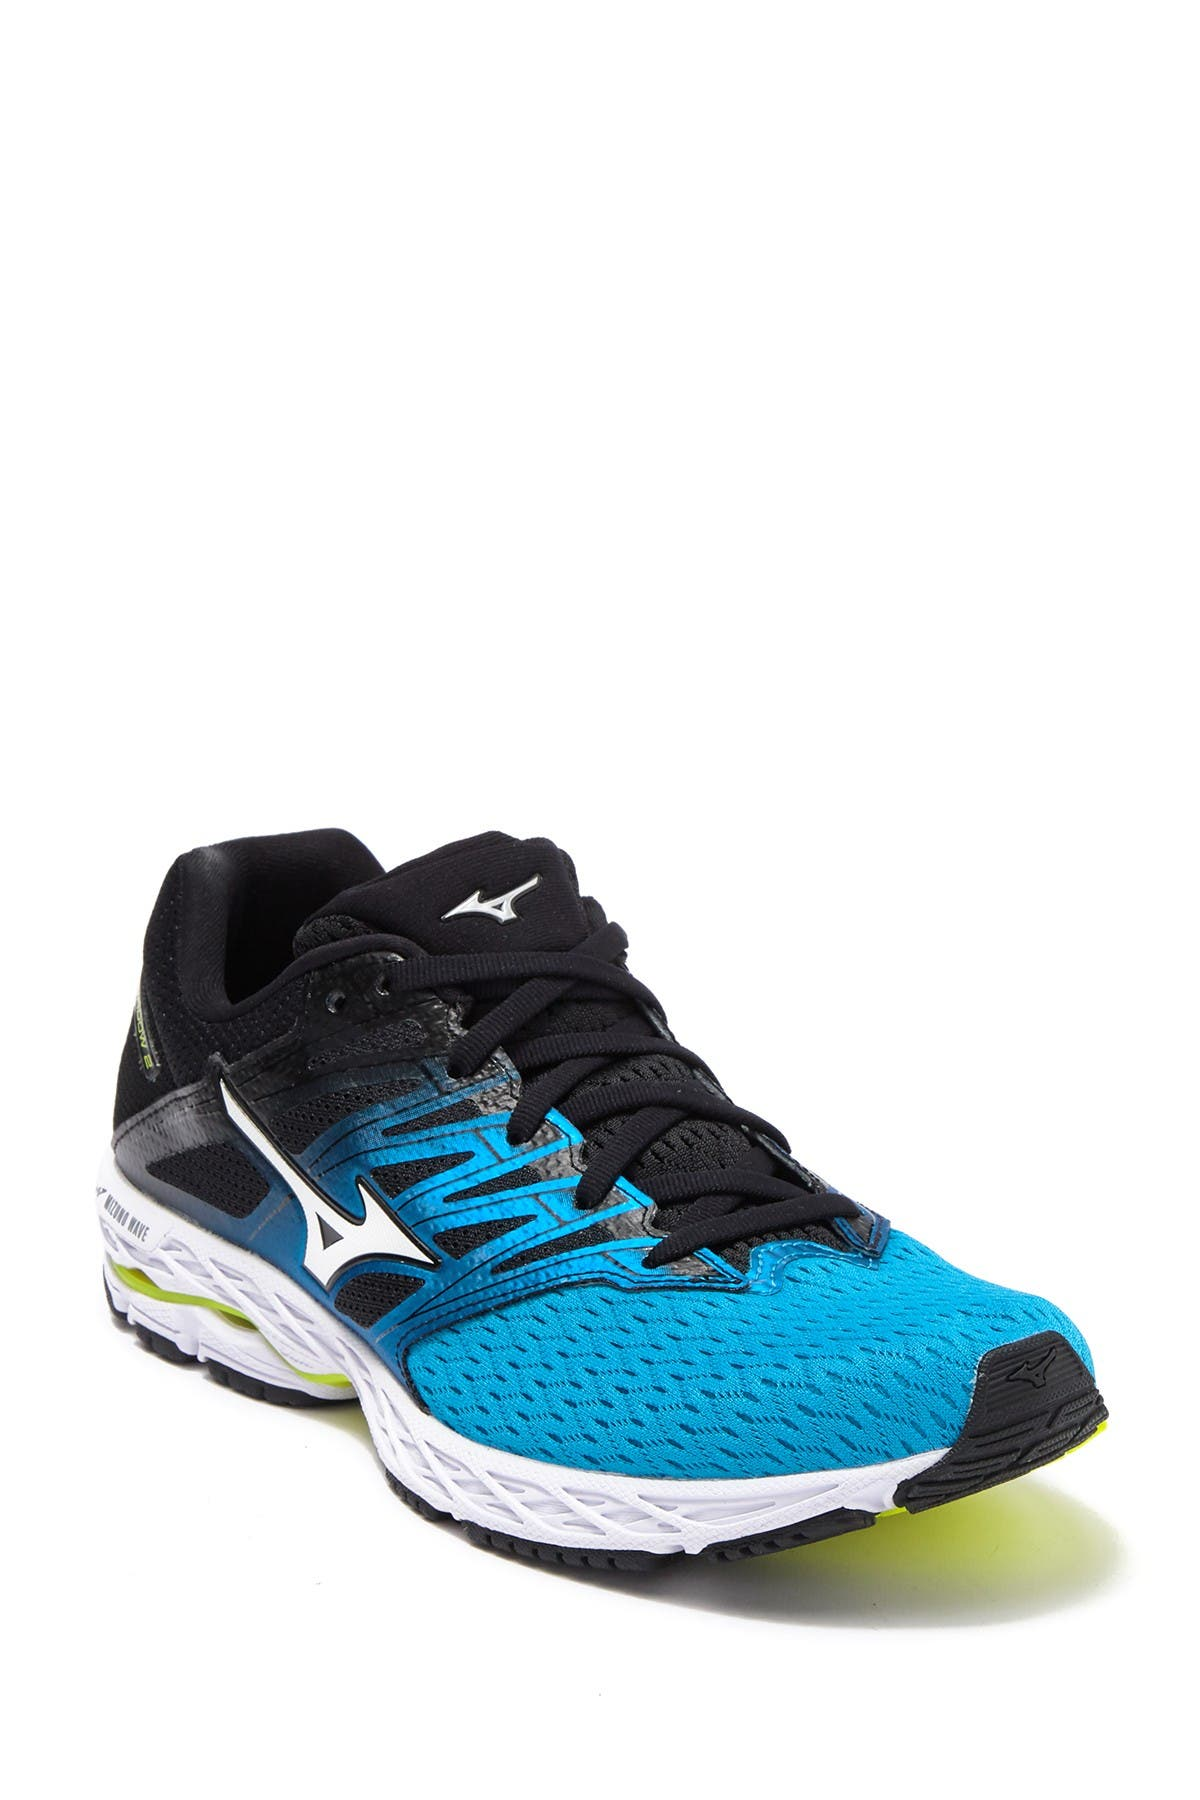 Image of Mizuno Wave Shadow Sneaker